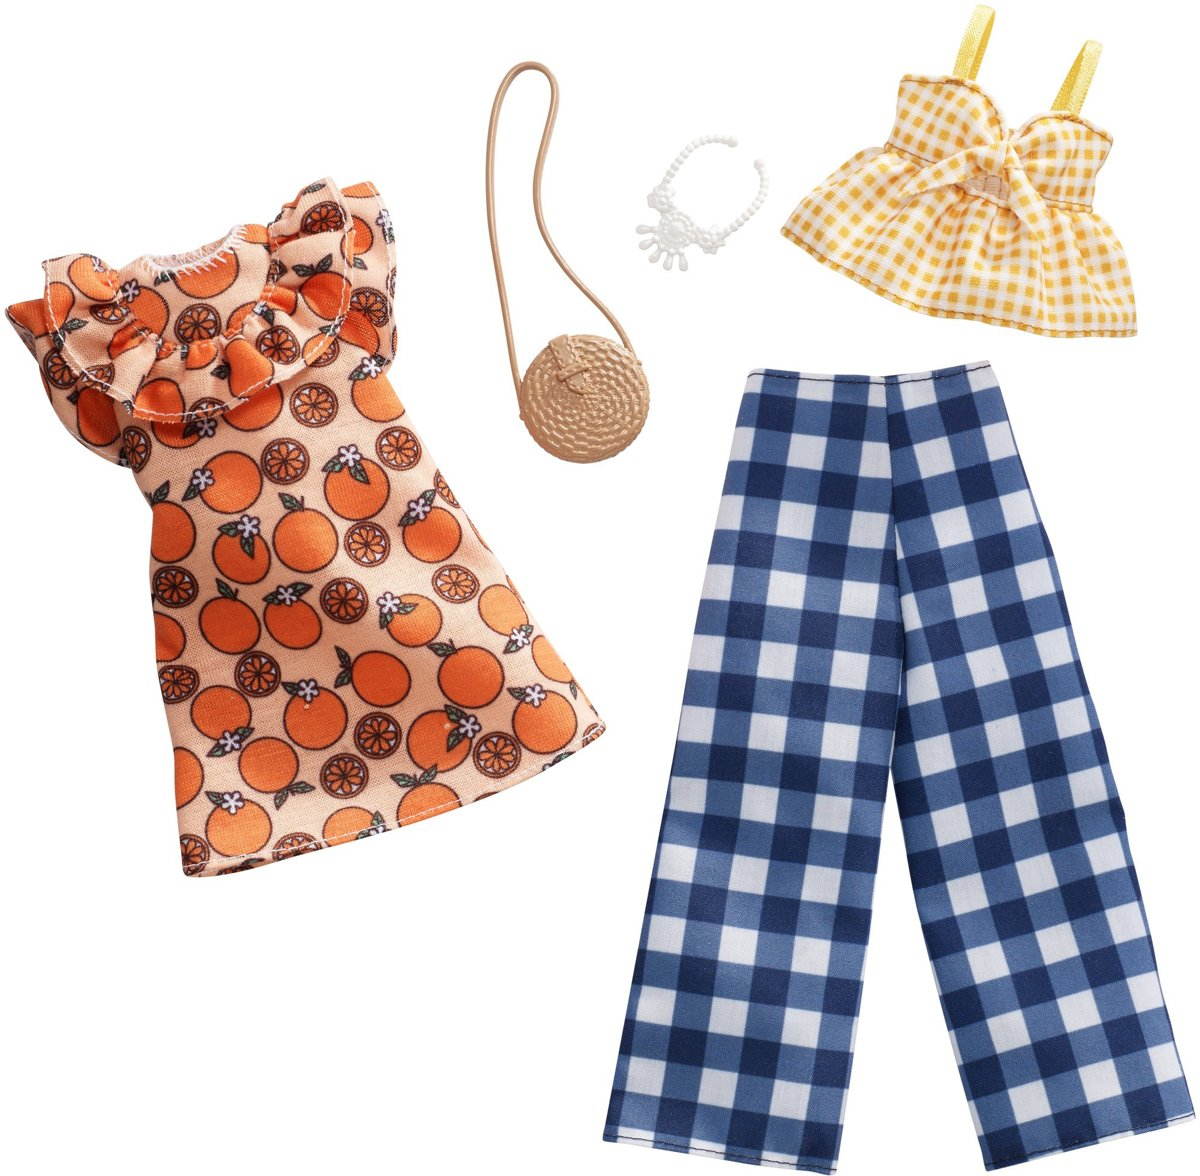 Kledingsetje Orange Gingham - 2 Outfits